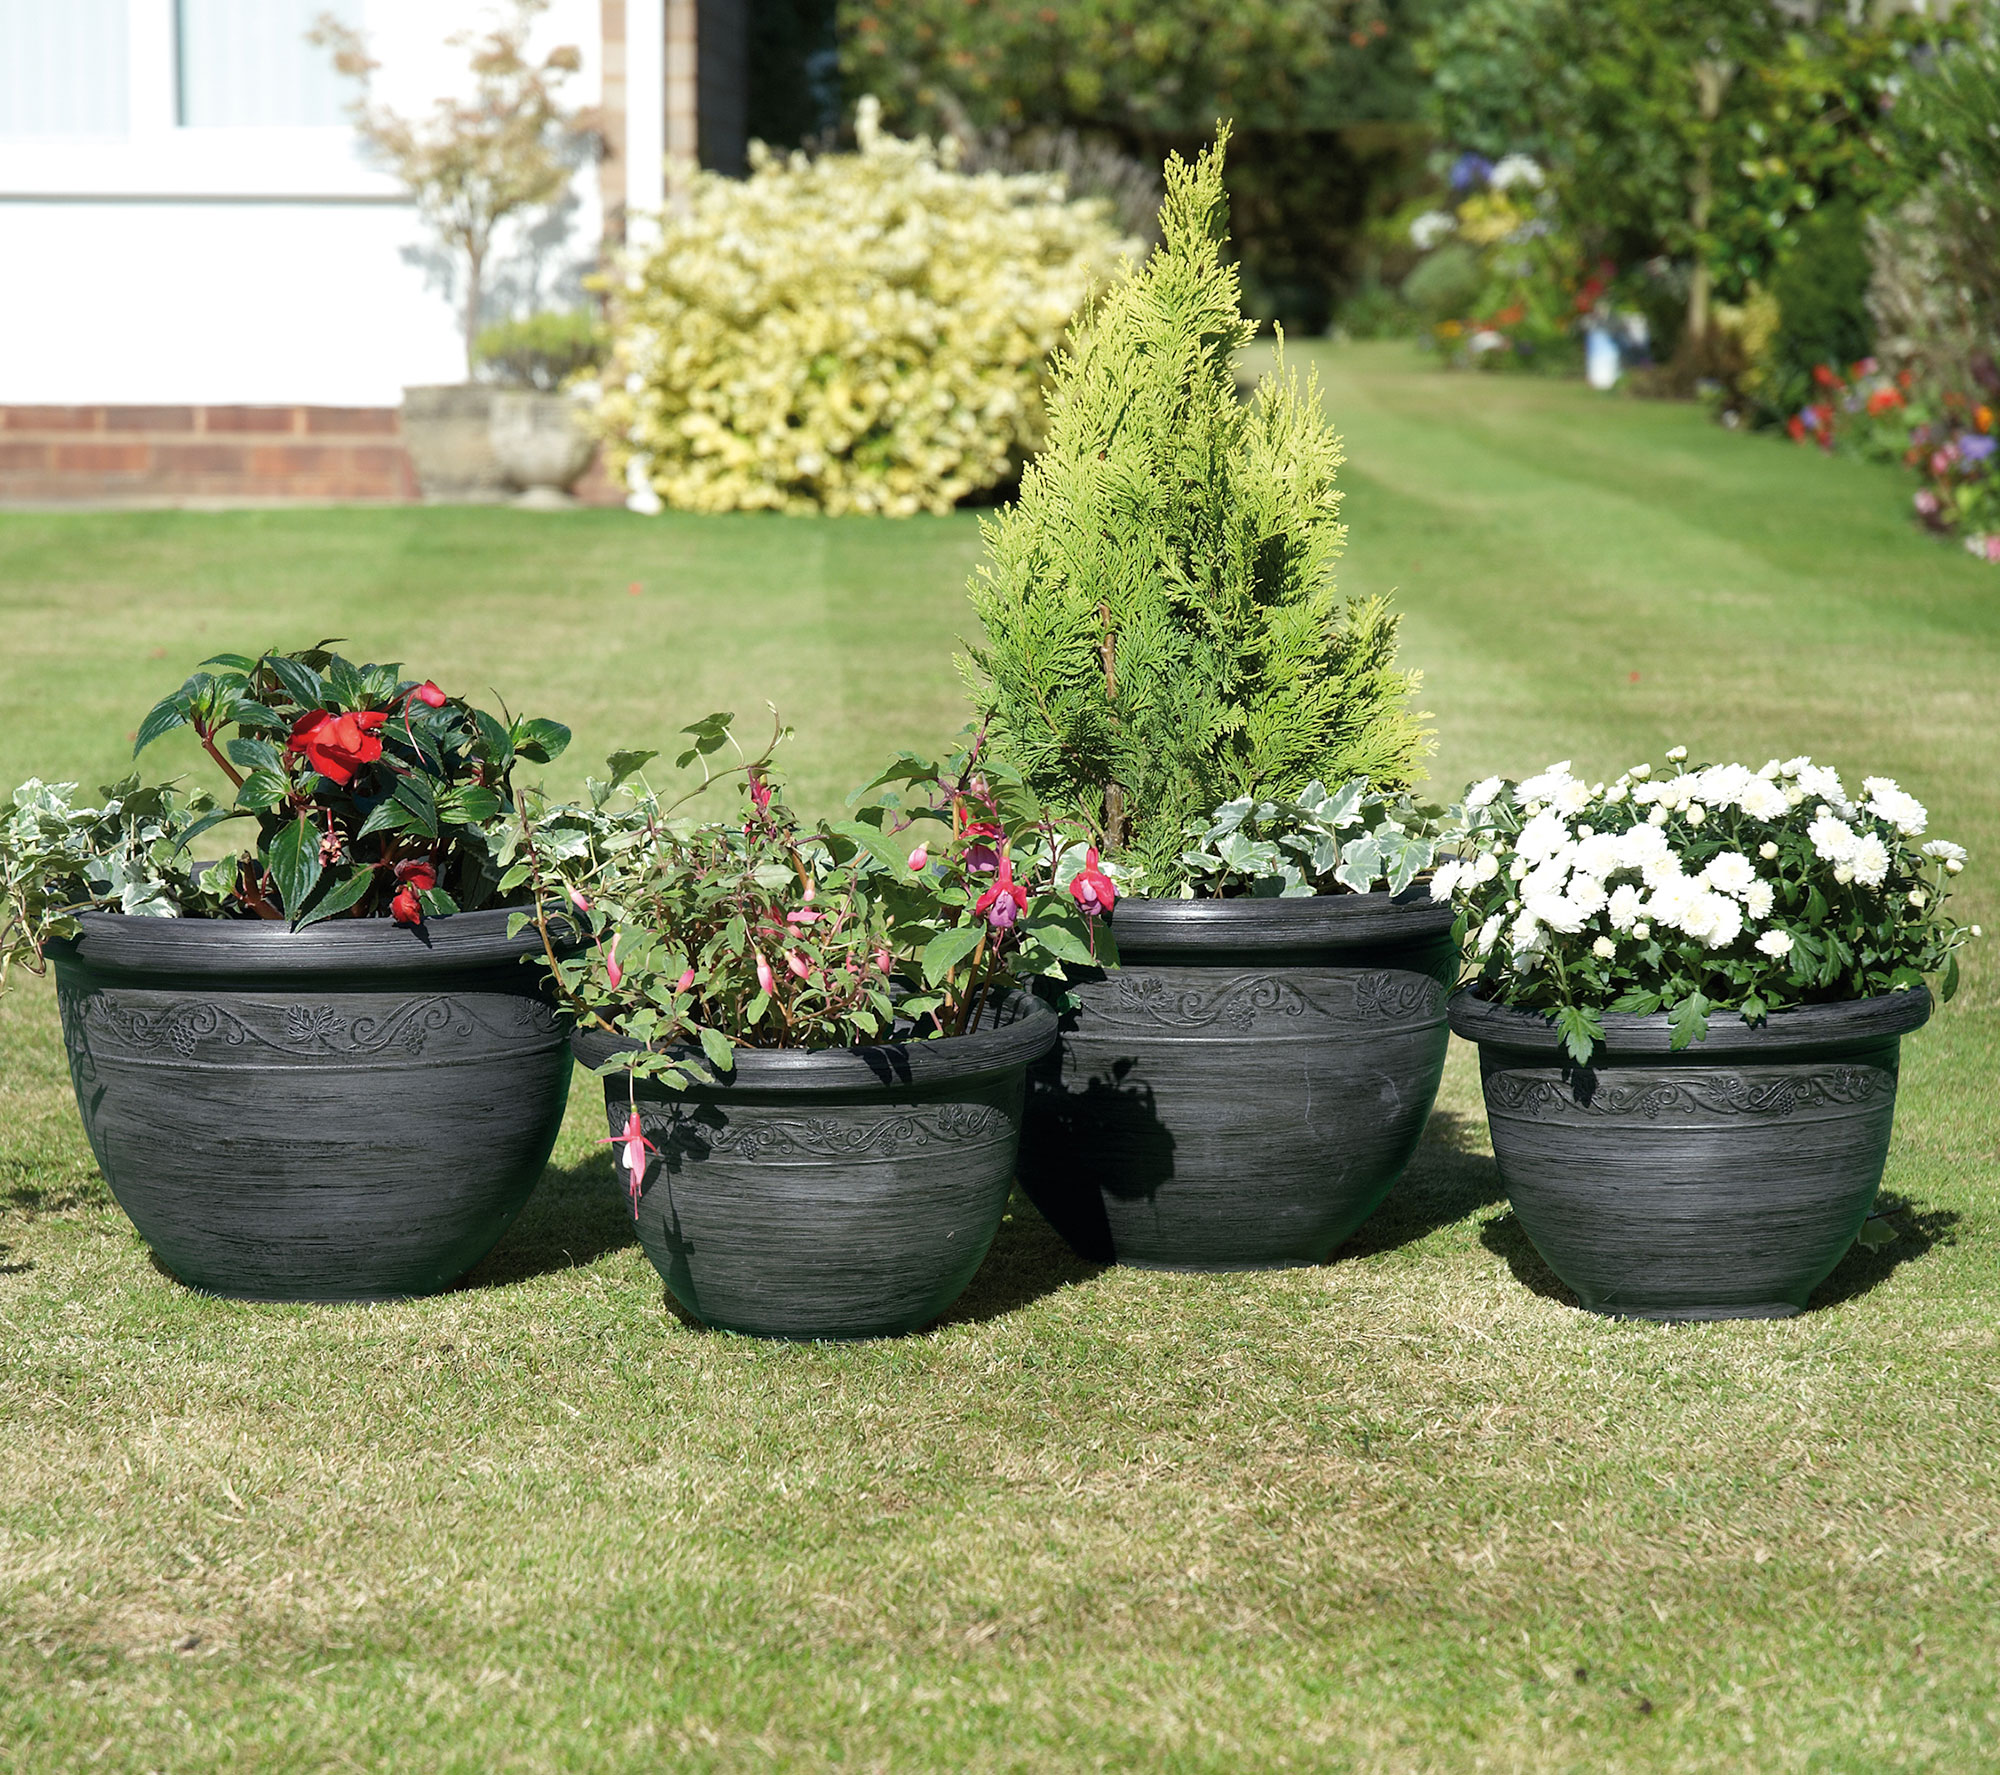 Big Garden Planters Large Garden Planter Shop For Cheap Garden And Leisure And